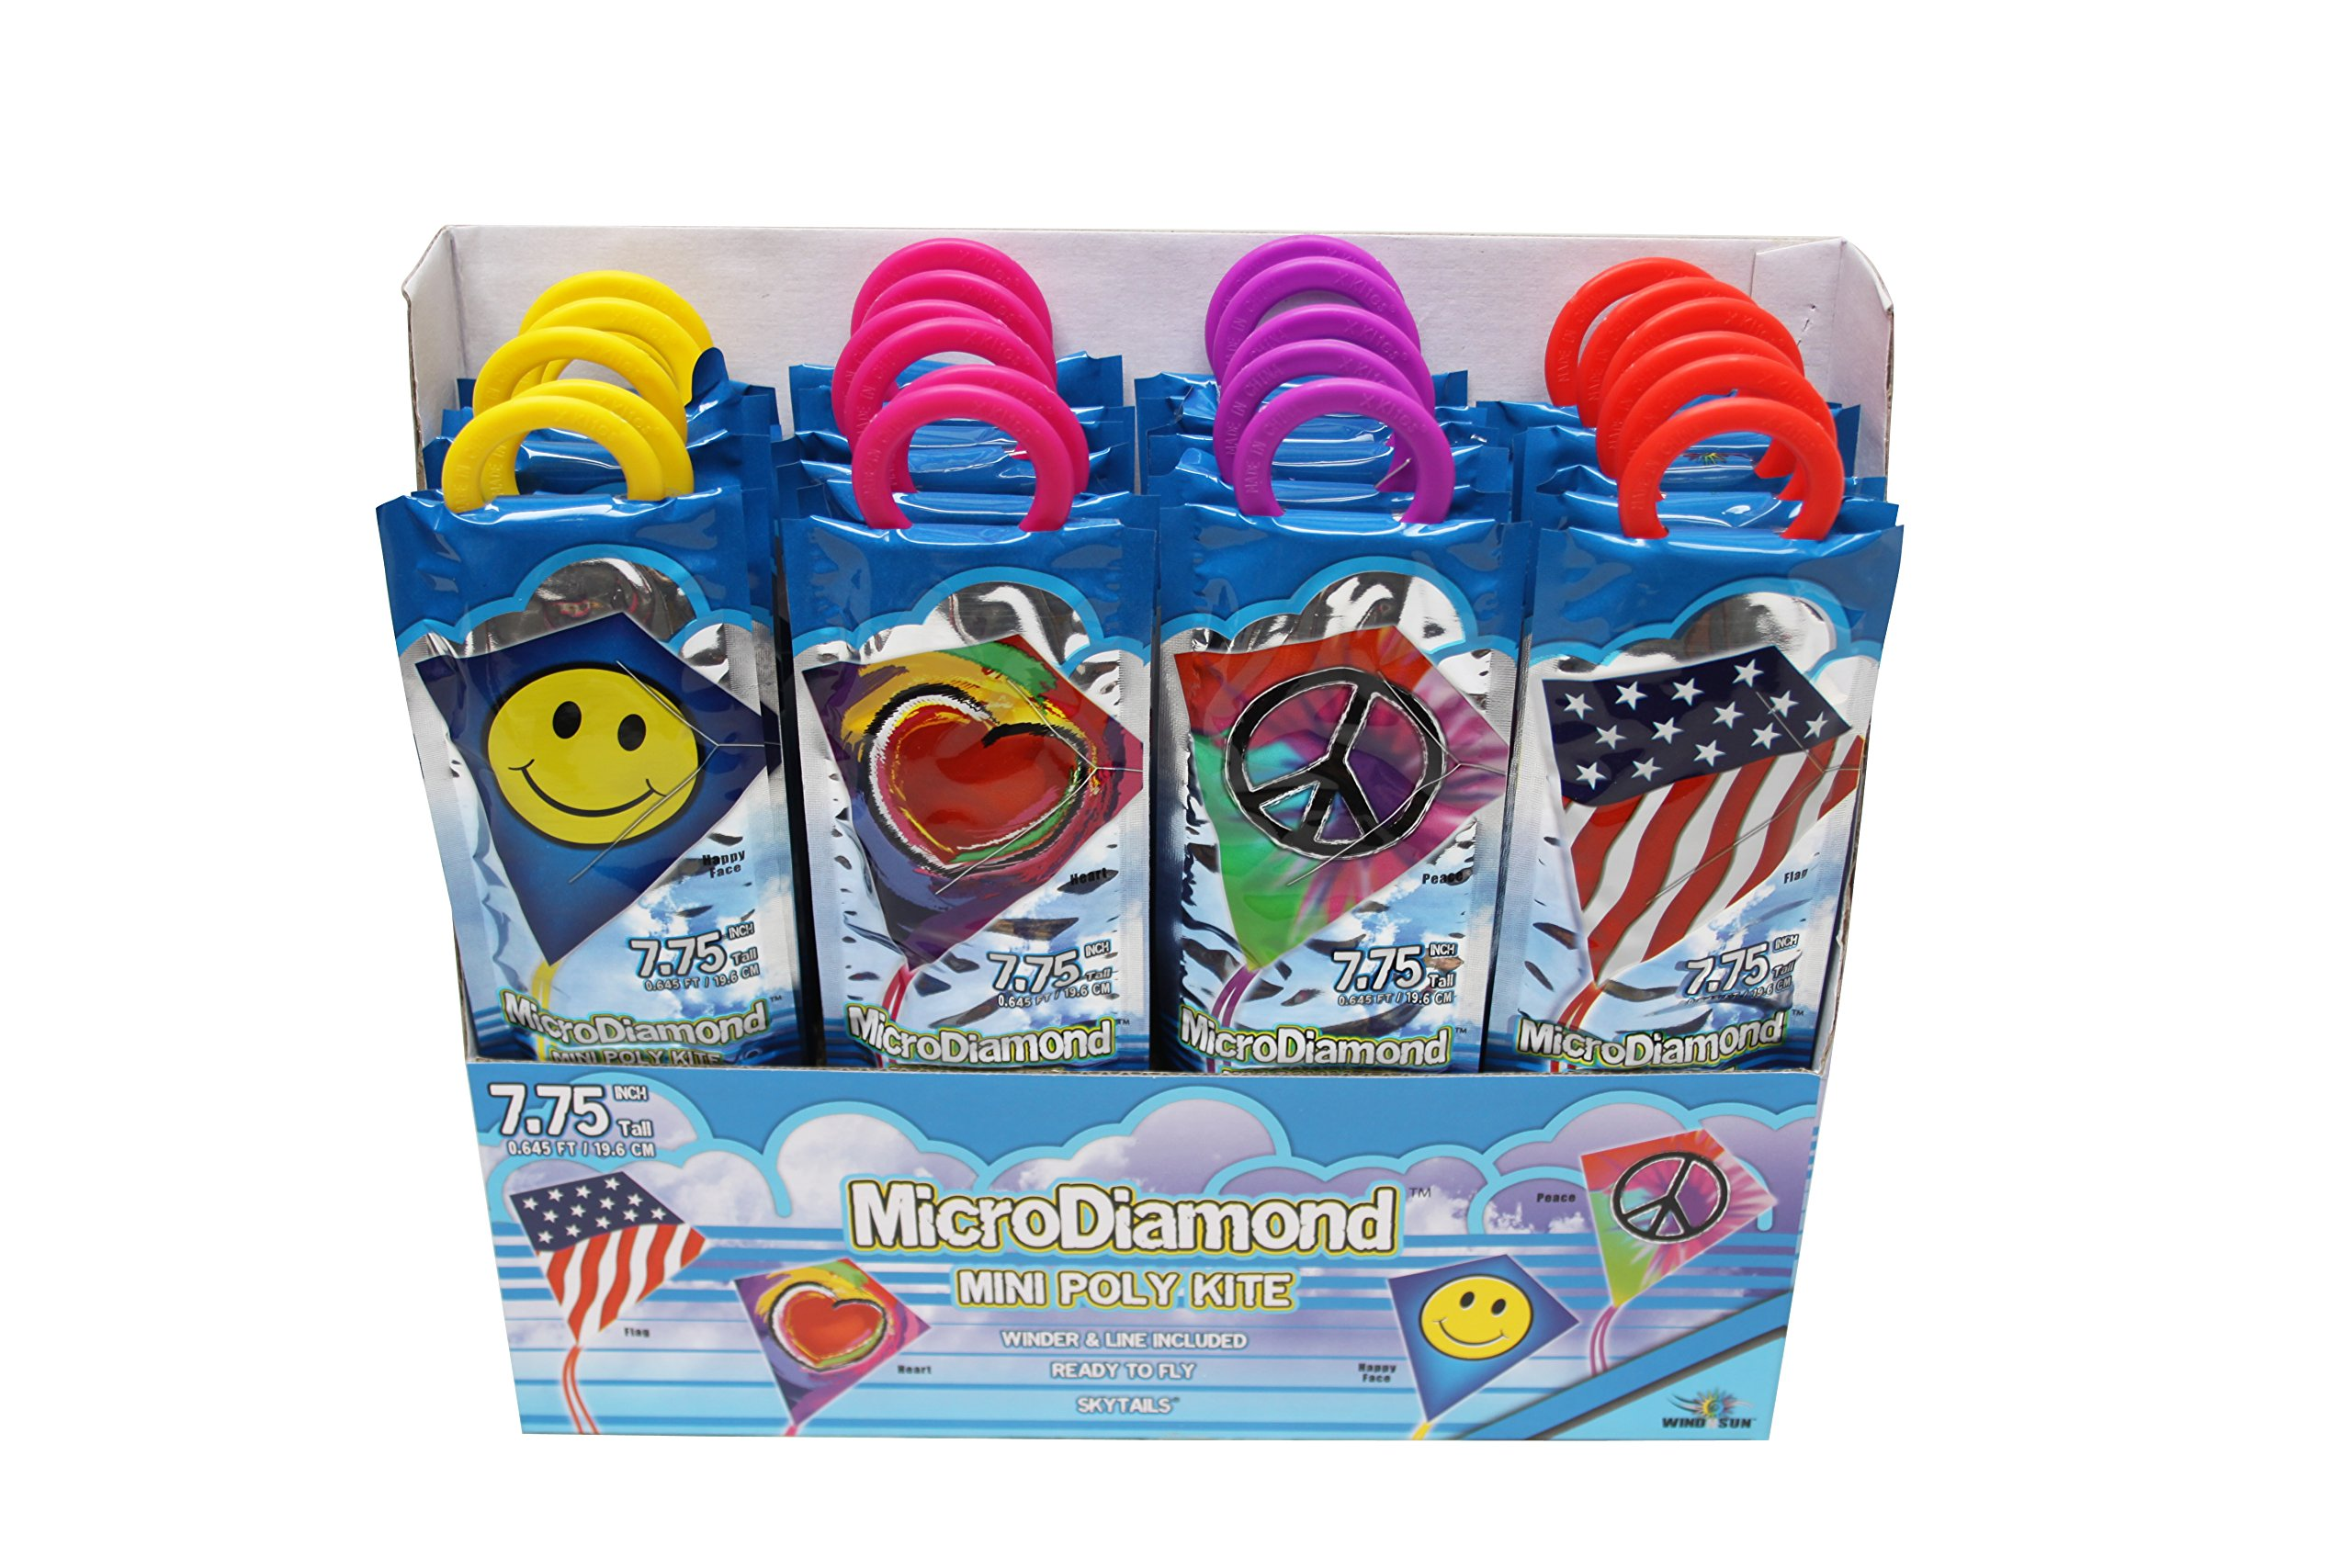 X-Kites MicroDiamond Party Pack Assortment of Poly Nylon Kites, 7.75'', 24-Piece PDQ